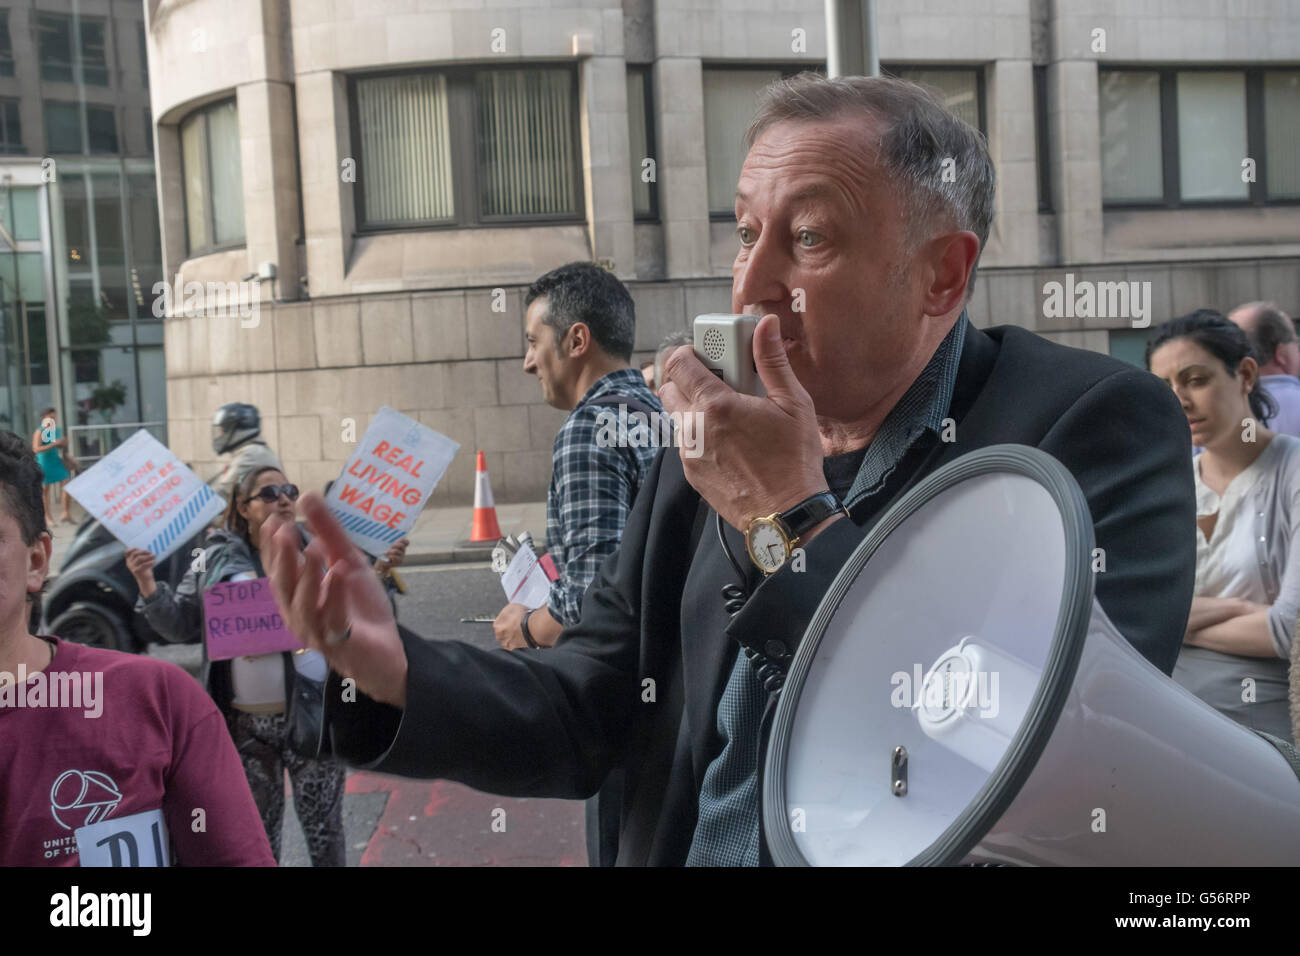 London, UK. June 21th, 2016. A speaker from the IWW brings solidarity and tells the protesters outside the St Martin's Stock Photo